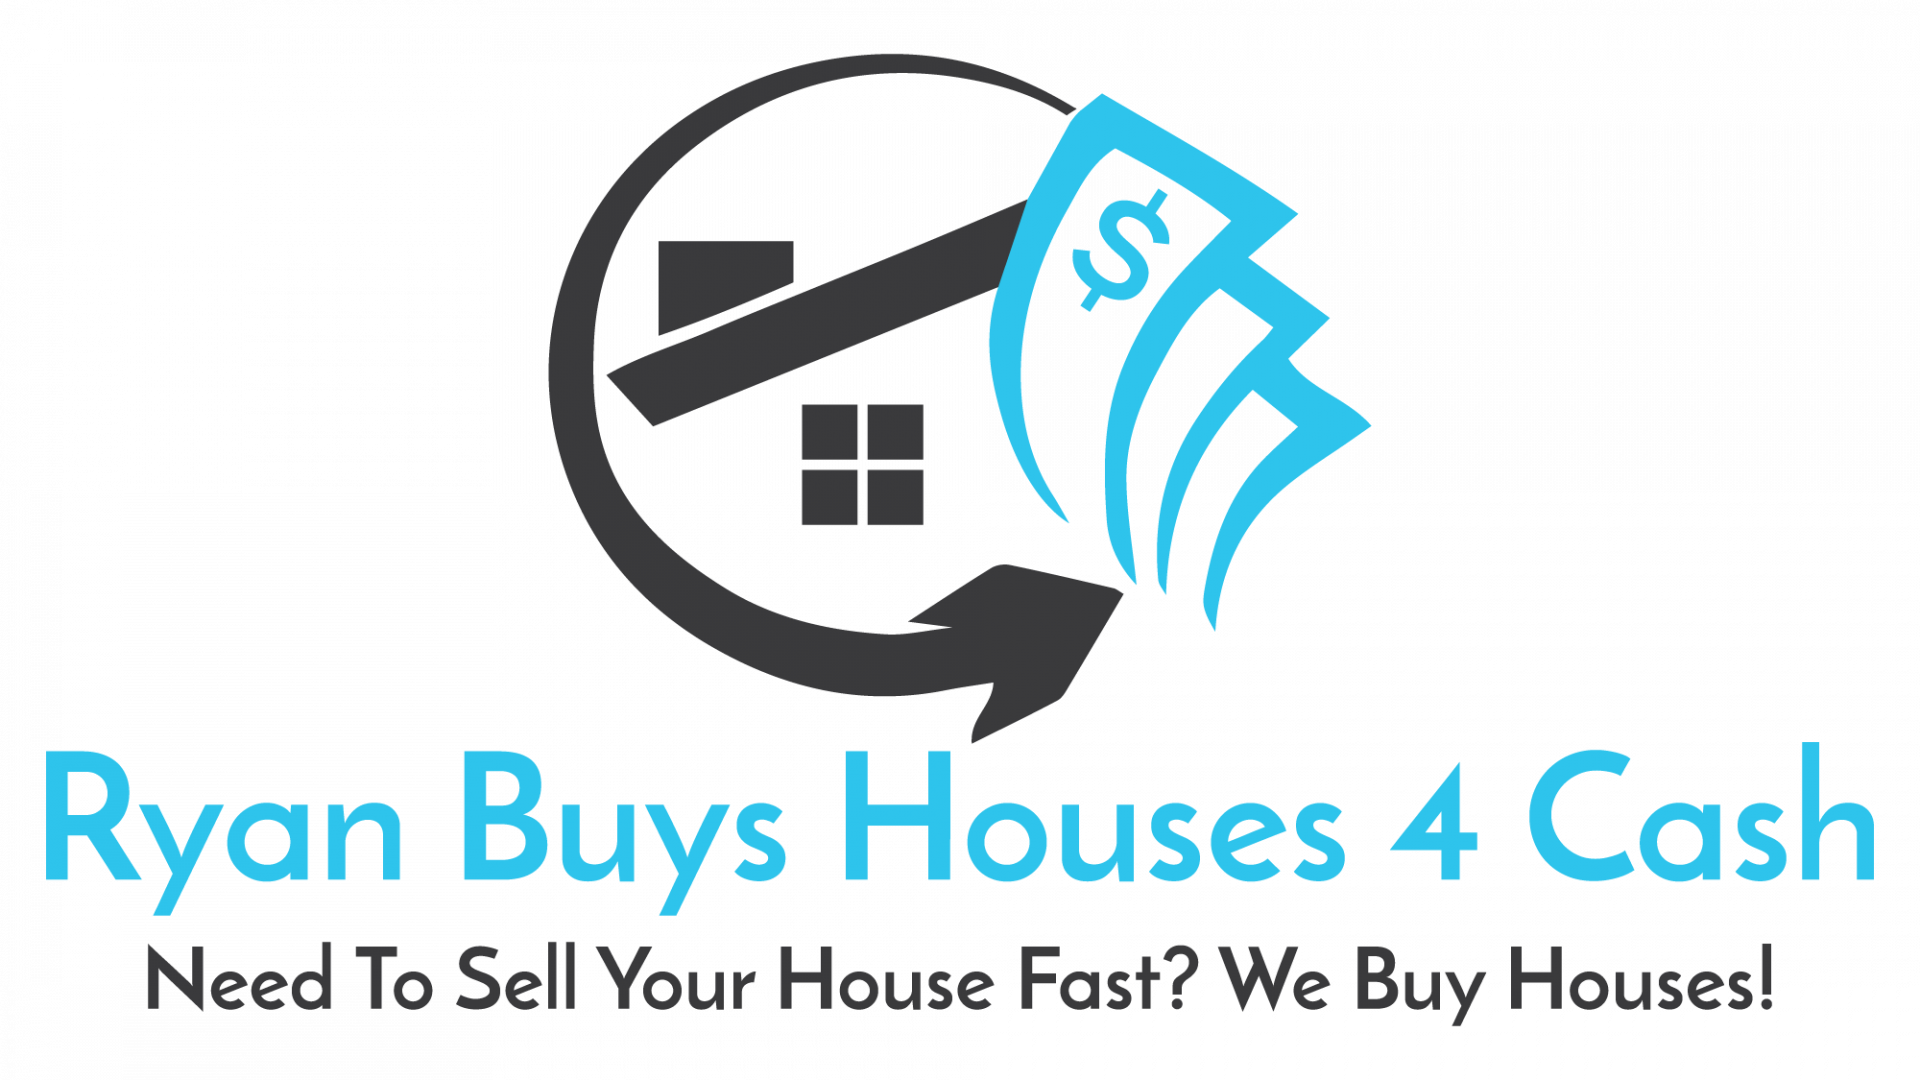 Ryan Buys Houses 4 Cash logo